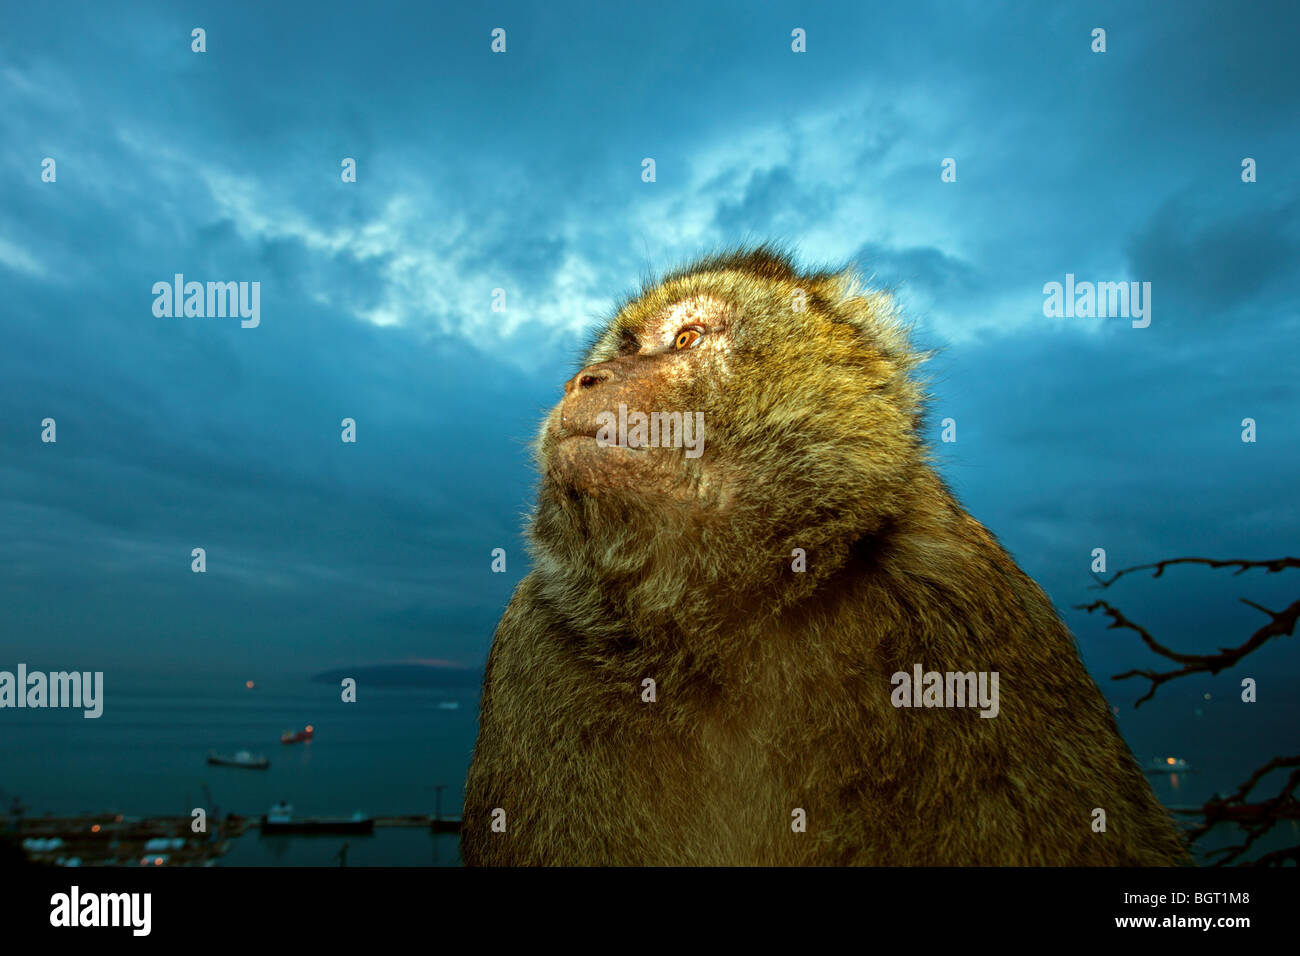 Barbary Ape (Macaca sylvanus), Rock of Gibraltar, UK - Stock Image